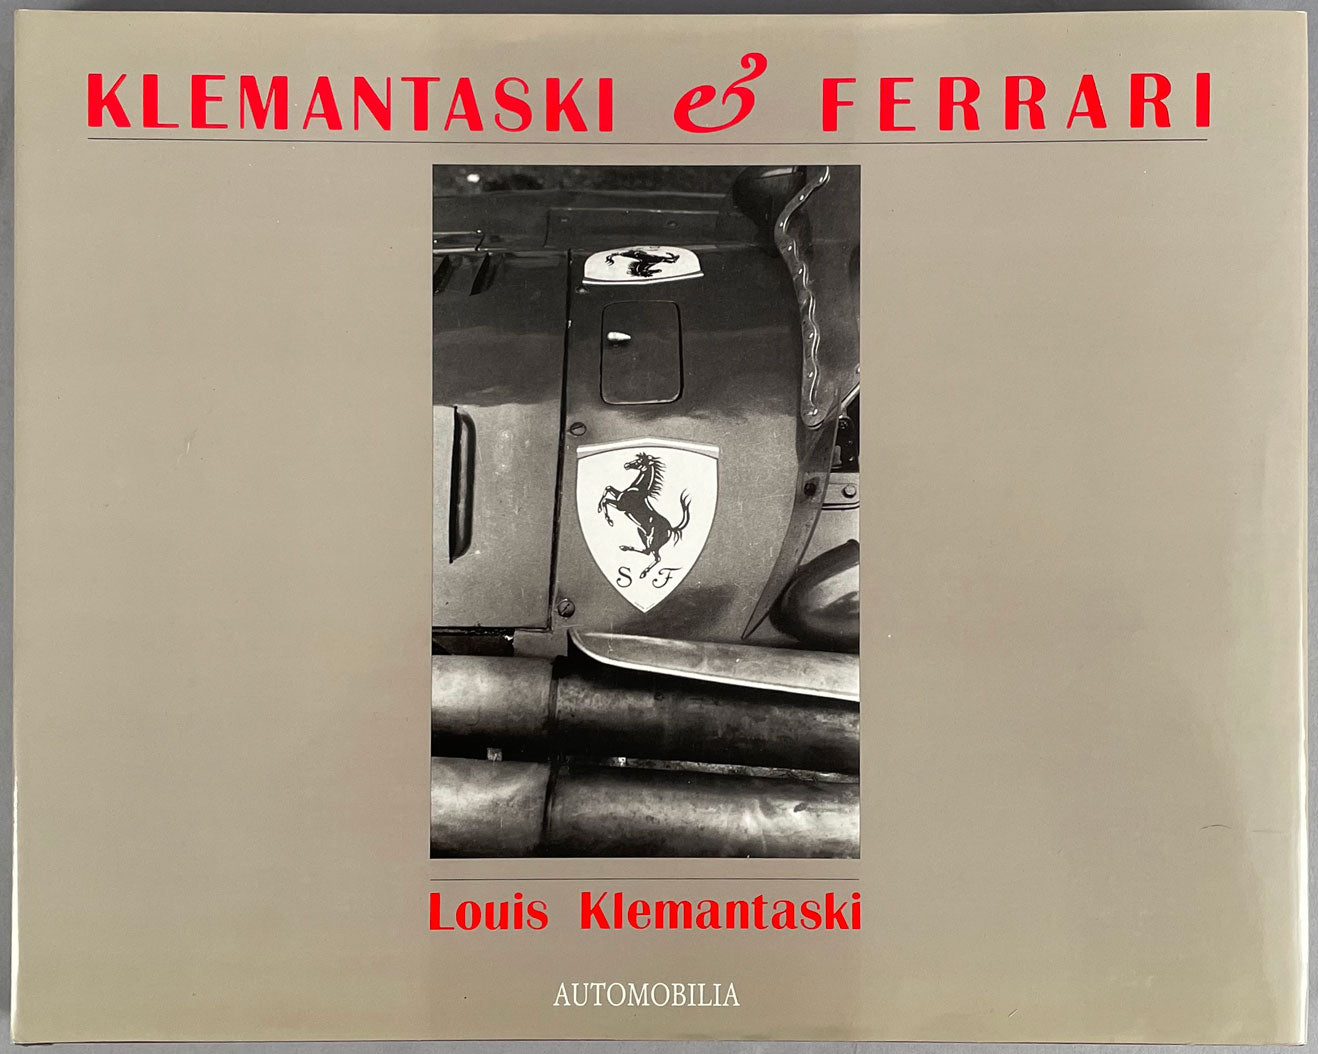 Klemantaski & Ferrari, 1st limited edition book, 1991